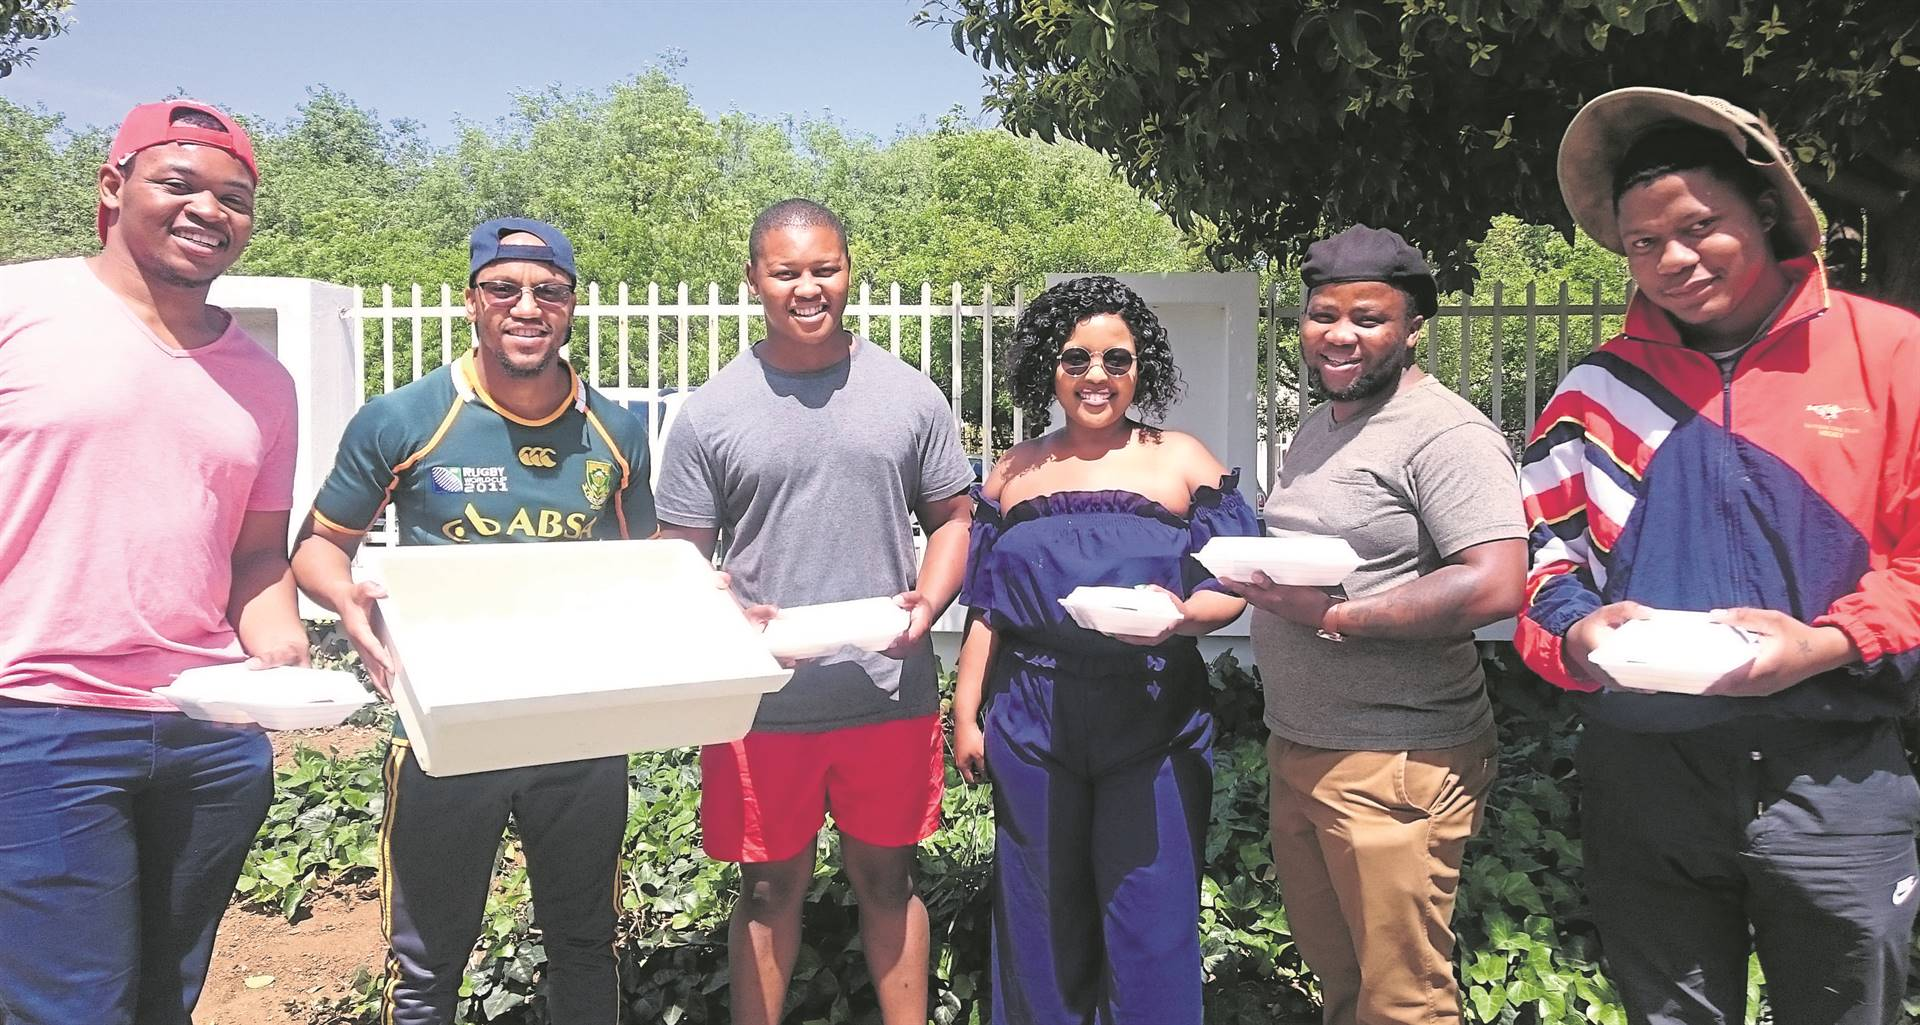 Representatives of Carriers of Hope and Man_Up teamed up to help alleviate the distress of some of Bloemfontein's homeless residents by connecting with them and donating food hampers on 28 September. From the left are Mihlali Songcaka, Amogelang Modise, Lebohang Sedio, Letshego Segalo, Keketso Mokoena and Jabulani Ntobi. Carriers of Hope undertakes this humanitarian gesture on Saturdays. Photo: Khumiso Dithebe